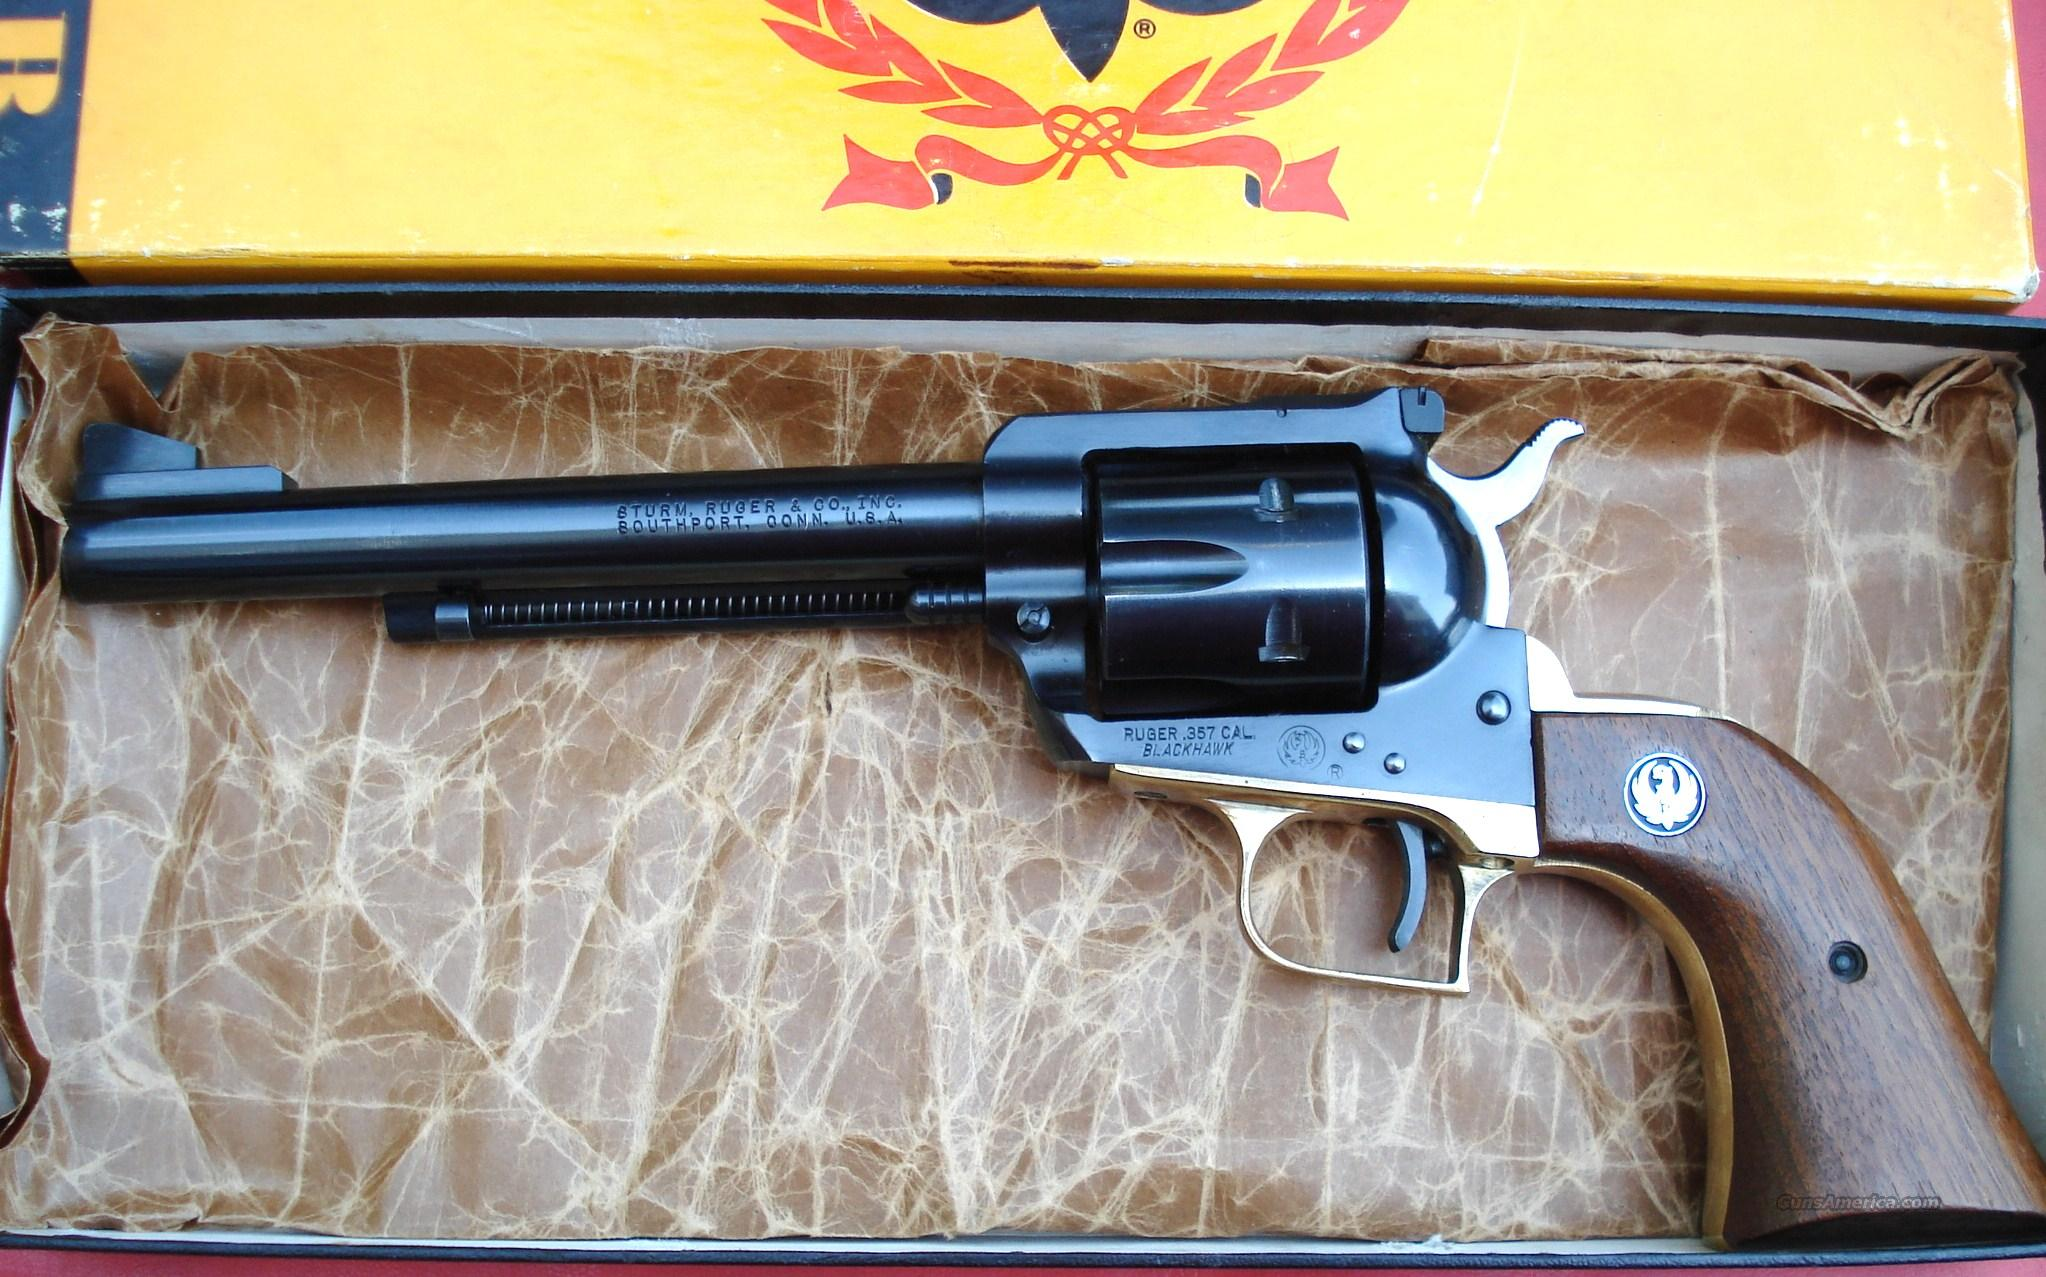 Ruger Brass Frame Blackhawk 6 1/2 Barrel .357 w/ Box  Guns > Pistols > Ruger Single Action Revolvers > Blackhawk Type